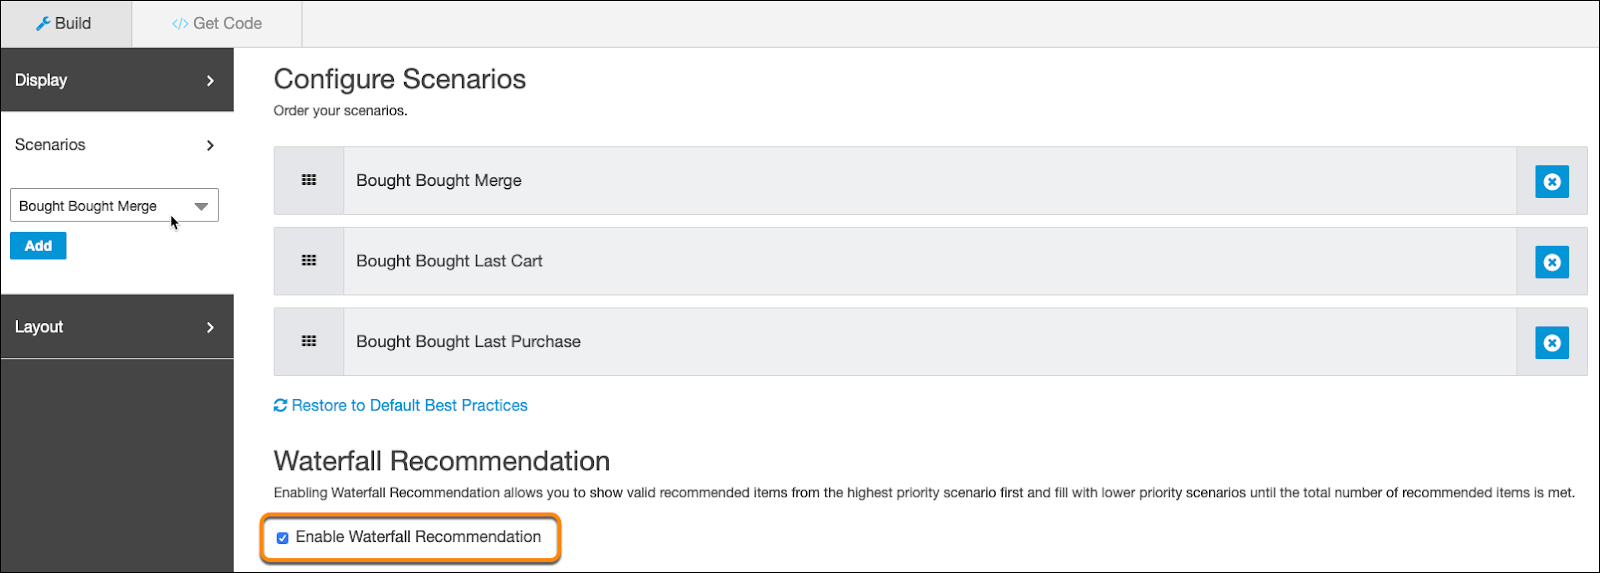 Configure scenarios with enable waterfall recommendations circled and the cursor on Bought Bought Merge.